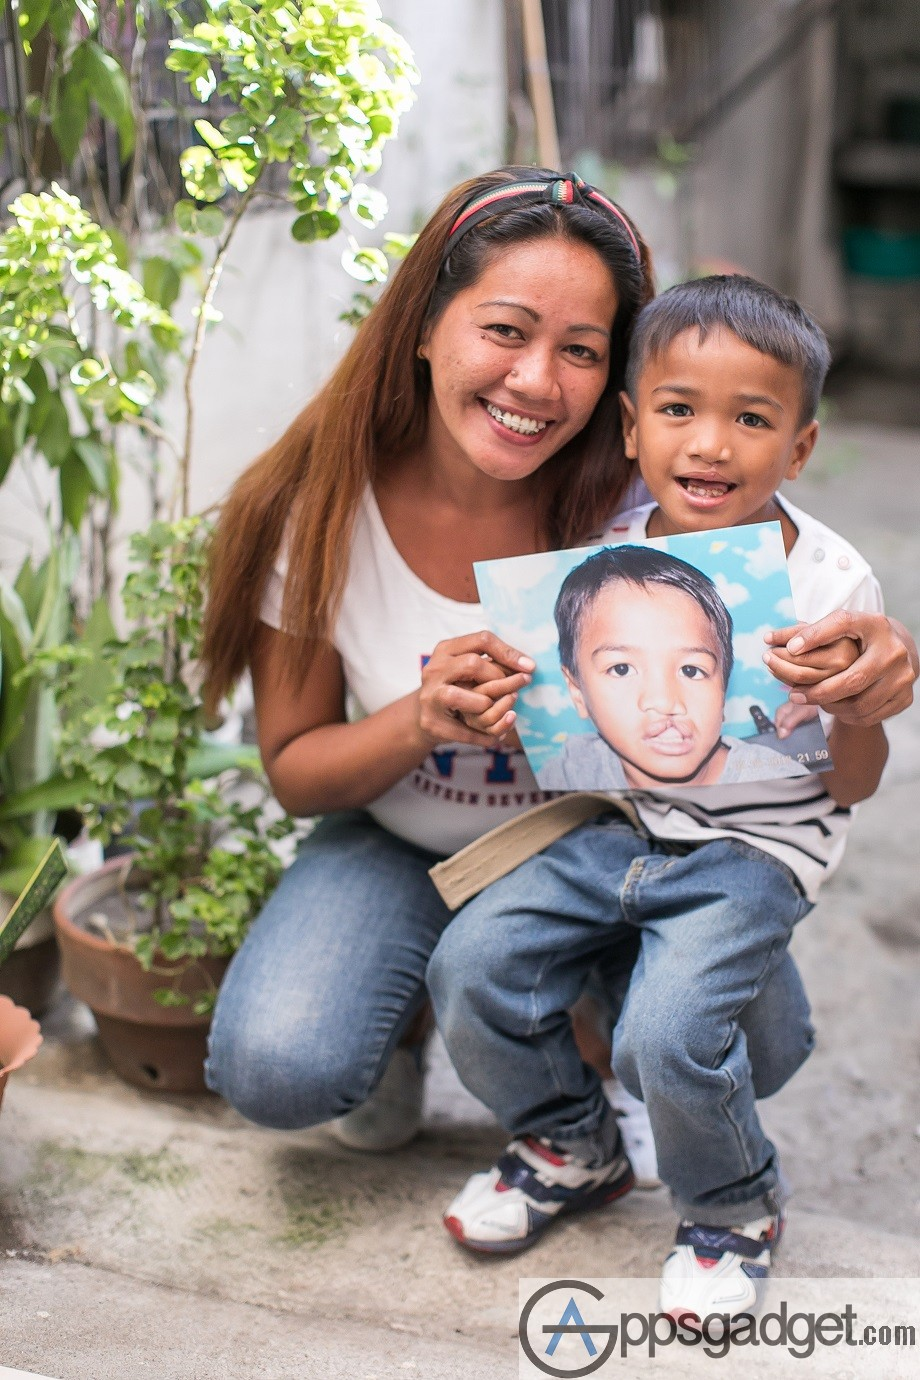 Globe, Smile Train: Giving children with cleft lips and palates a reason to smile